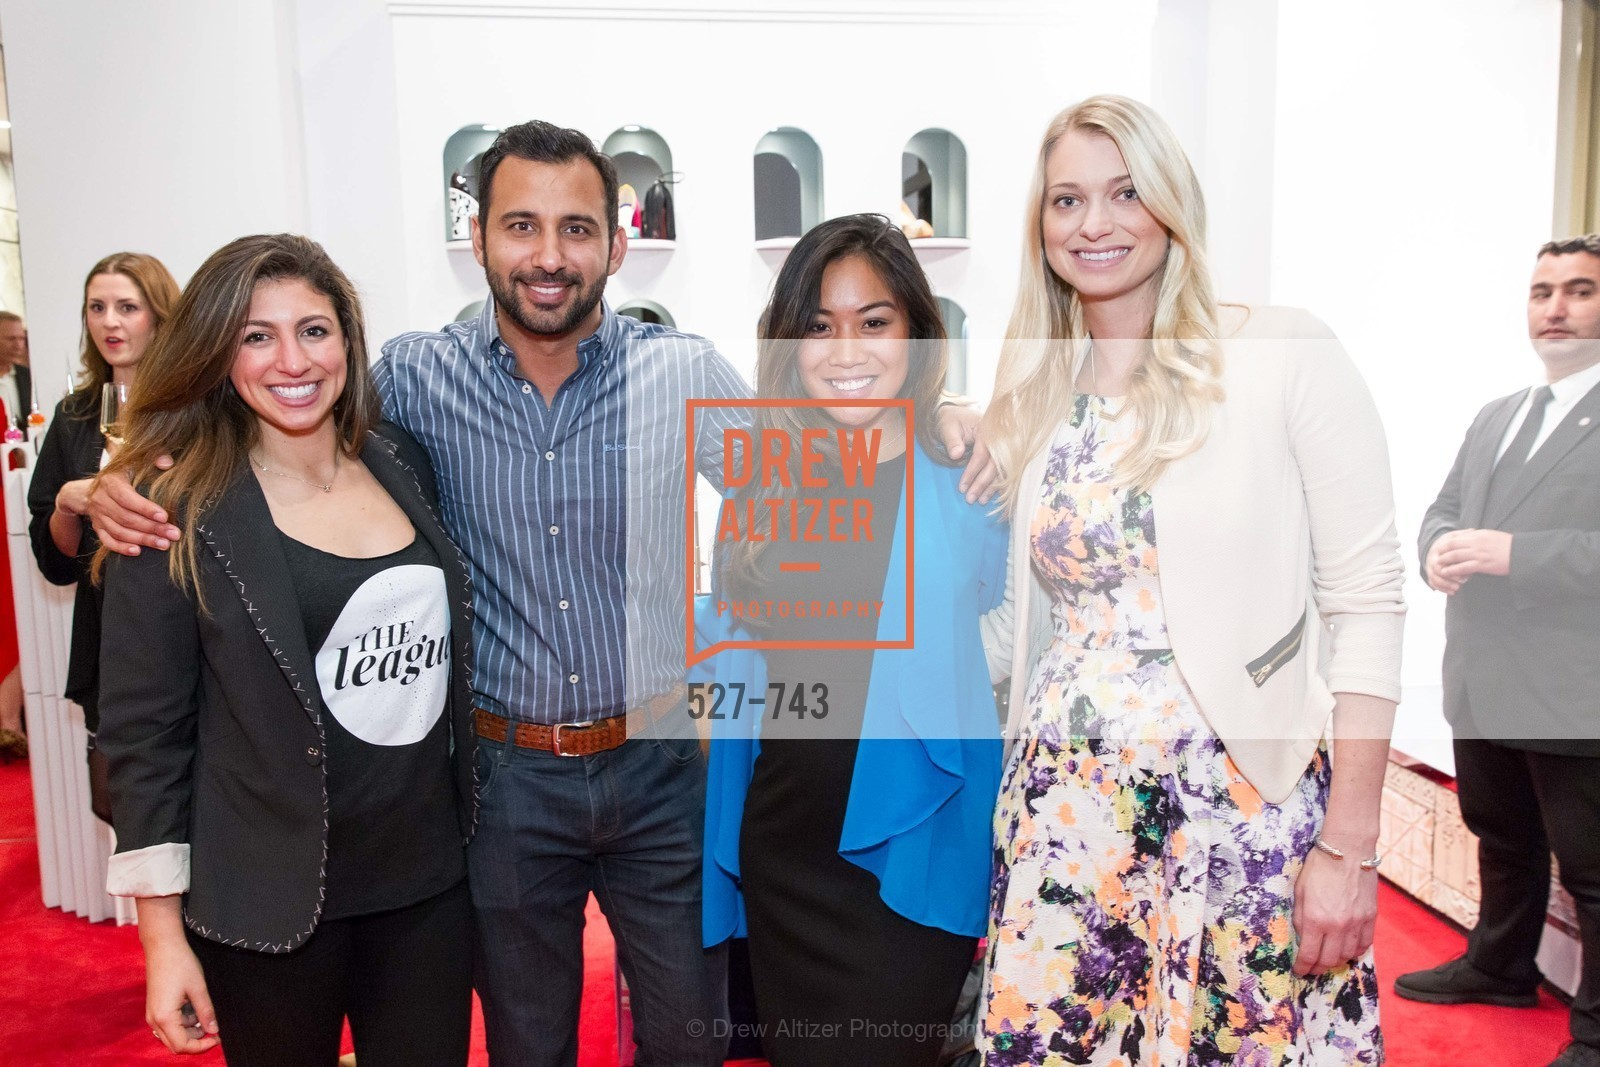 Meredith Davis, Payam Pakmanesh, Louella Aquino, Amanda Bradford, CHRISTIAN LOUBOUTIN Anniversary Party, US, May 20th, 2015,Drew Altizer, Drew Altizer Photography, full-service agency, private events, San Francisco photographer, photographer california